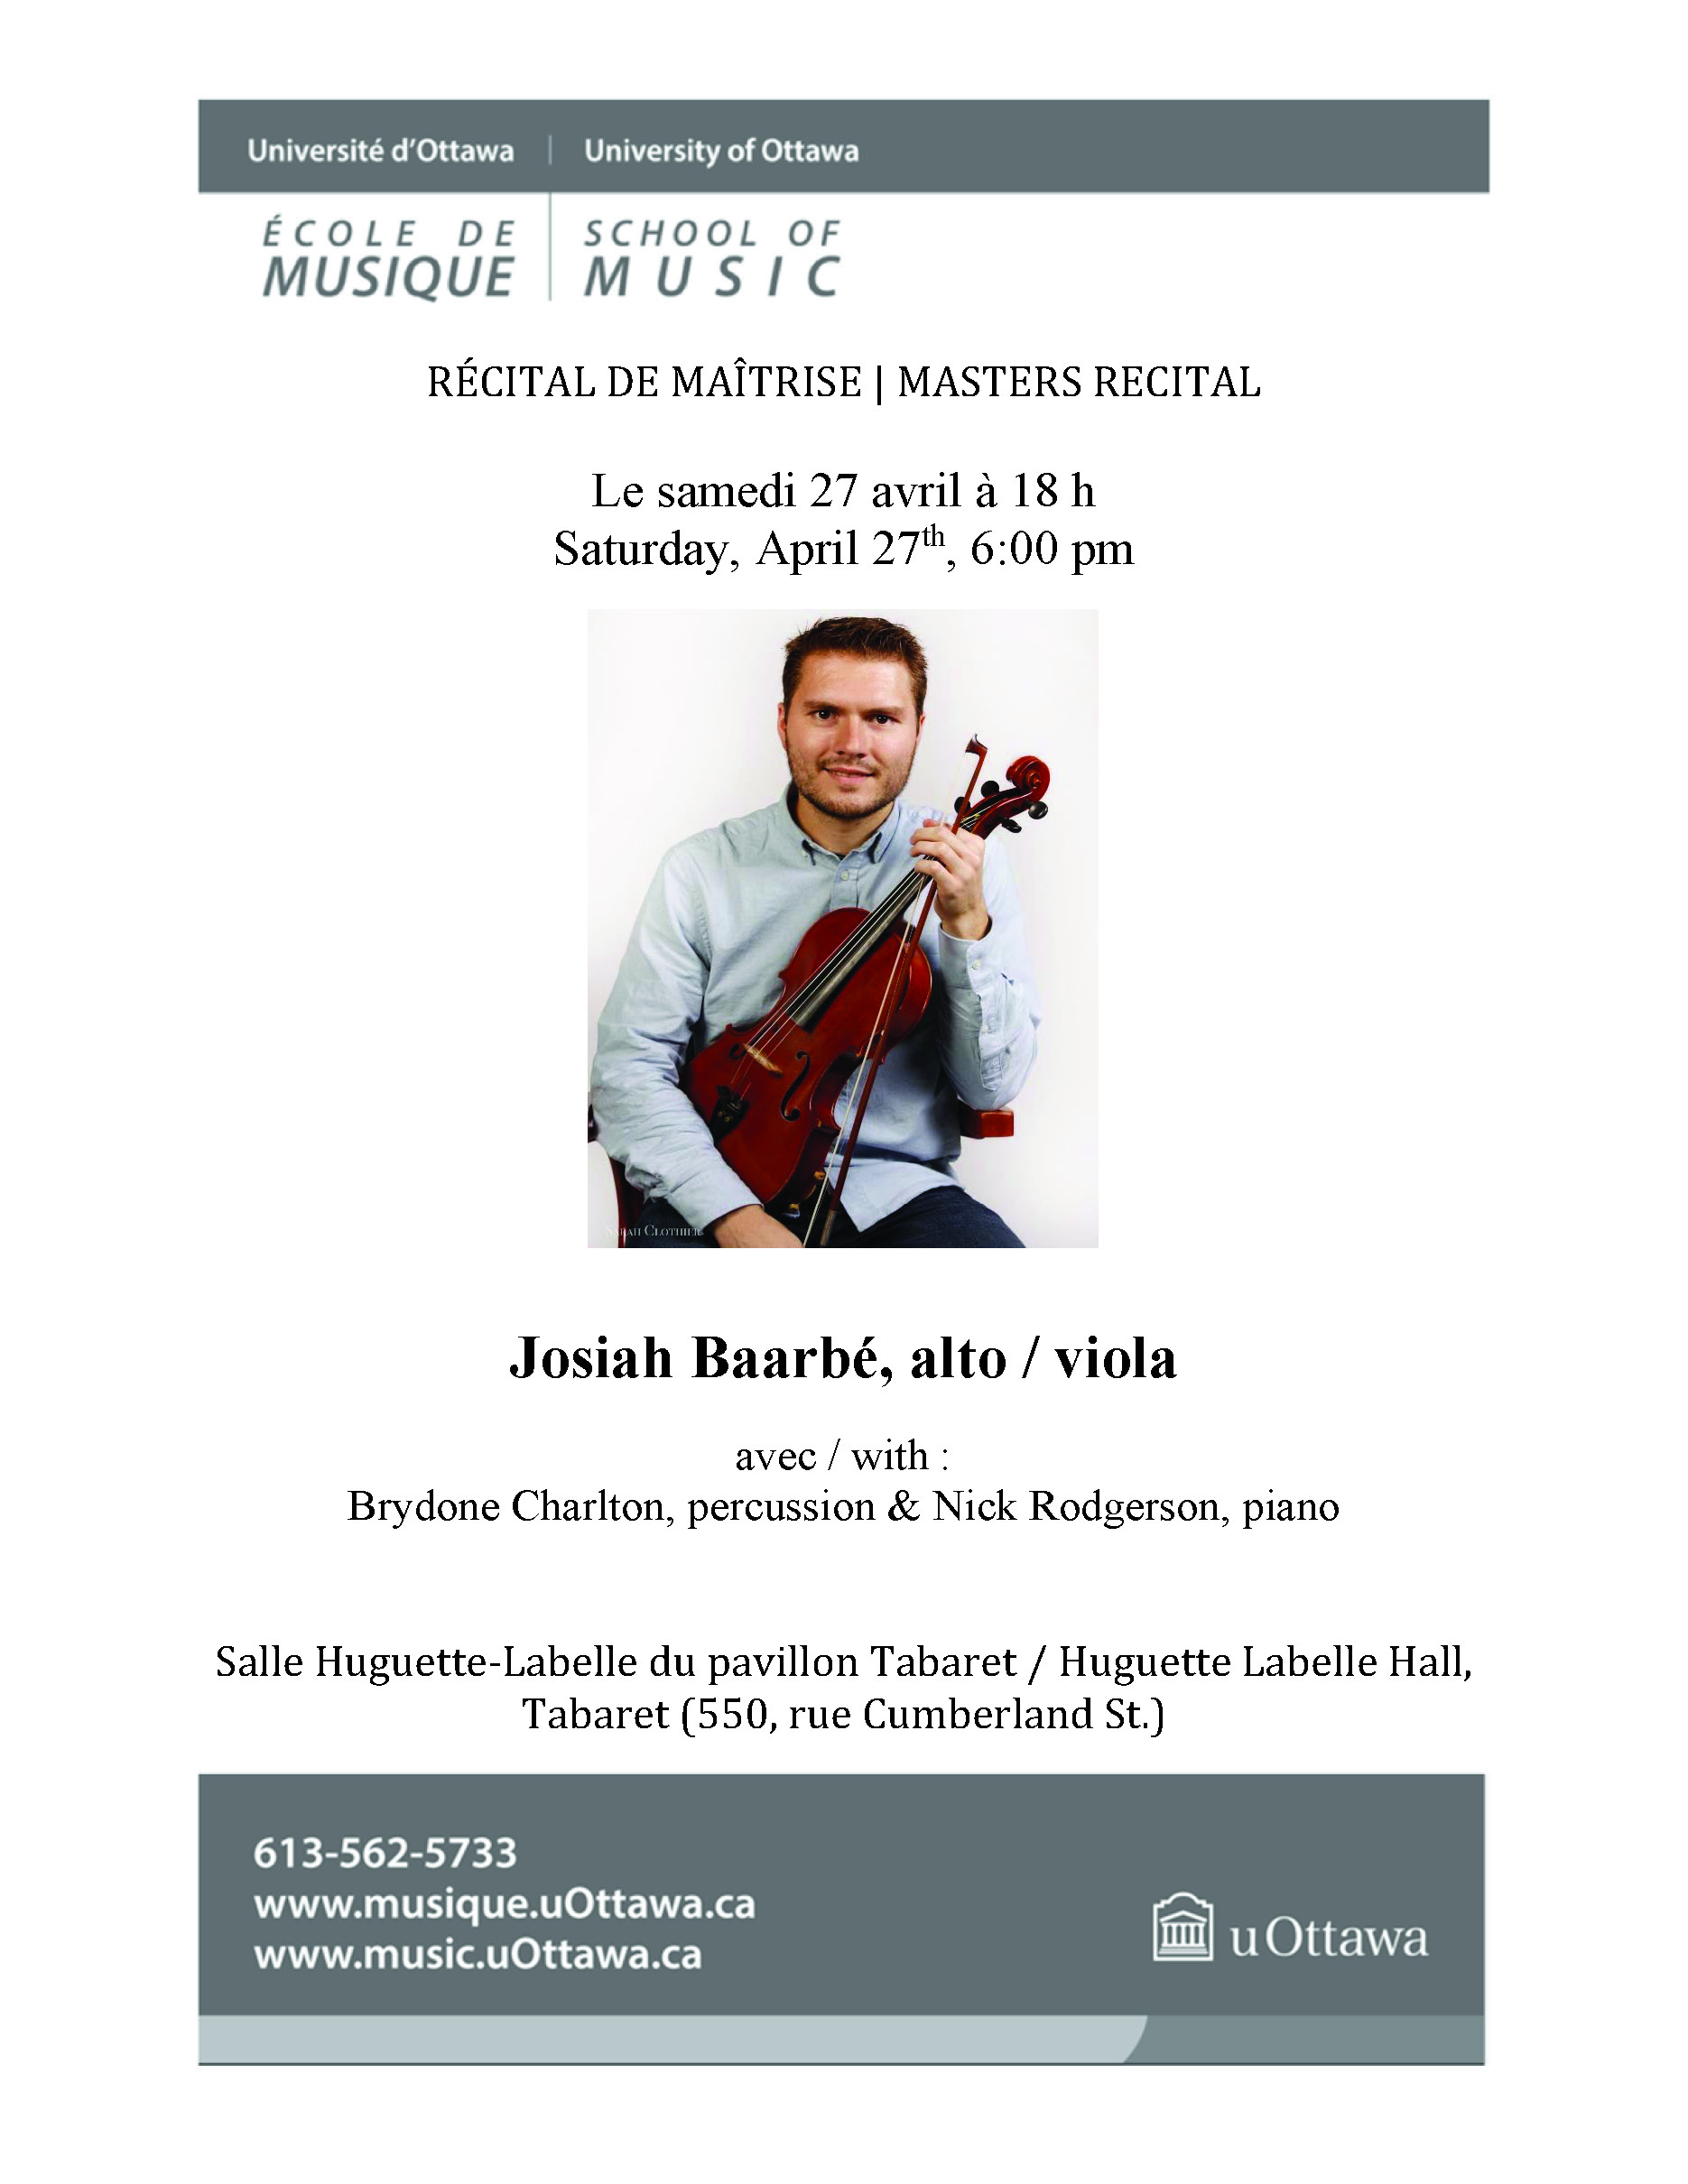 Josiah Baarbe recital program, page 1